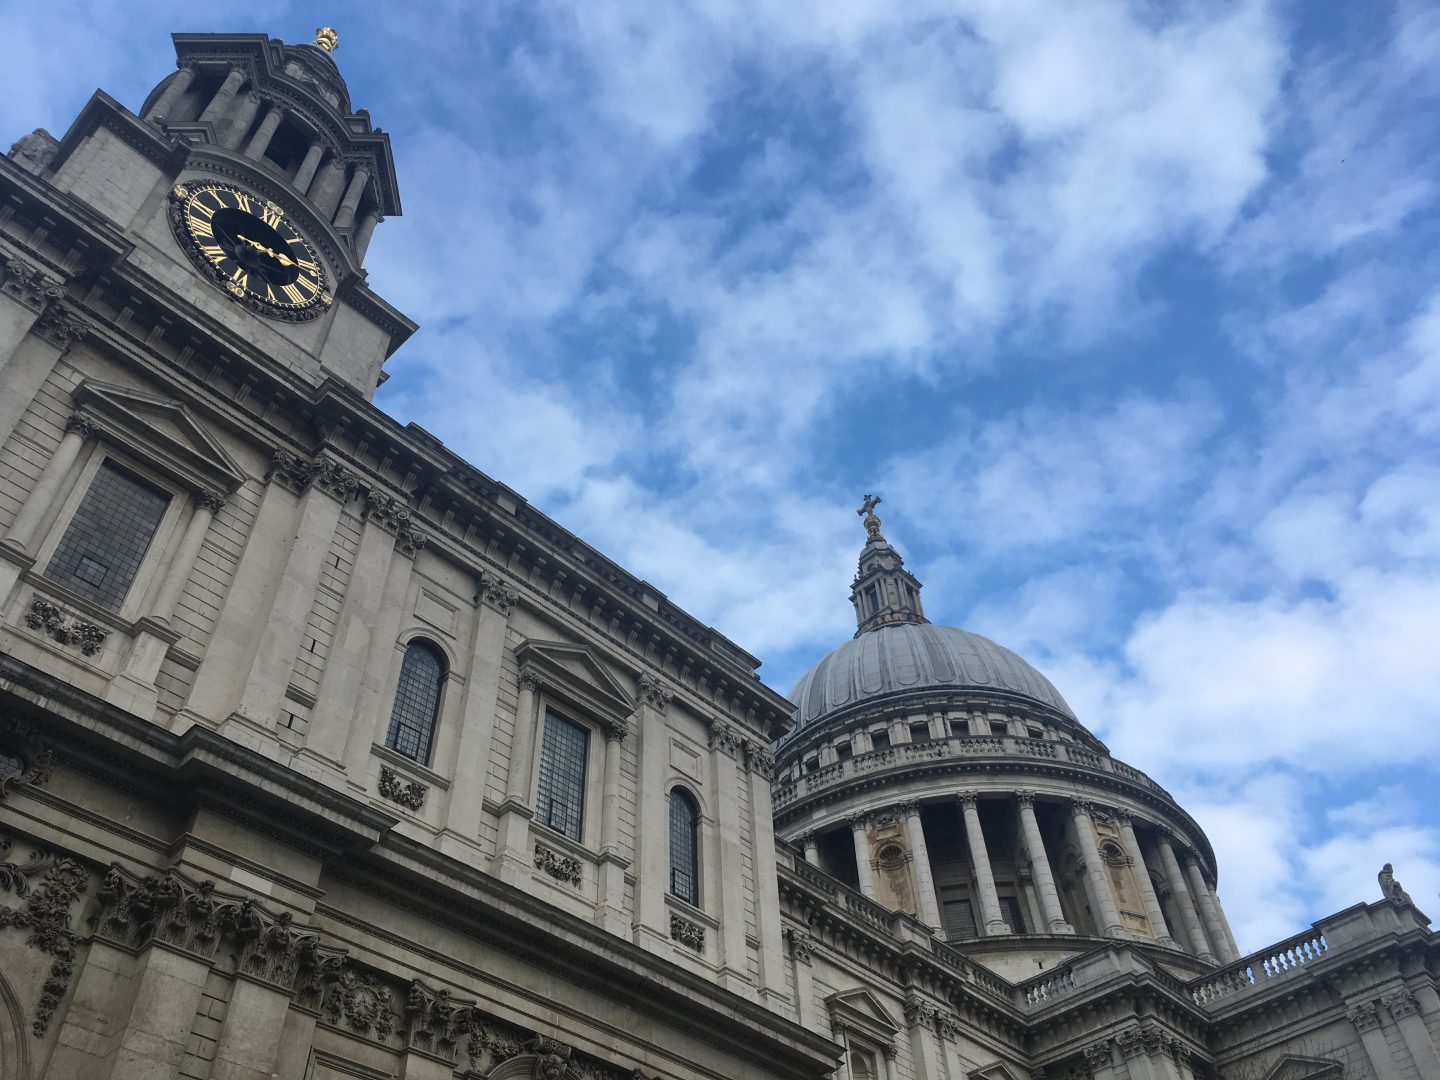 A Trip to St Paul's Cathedral